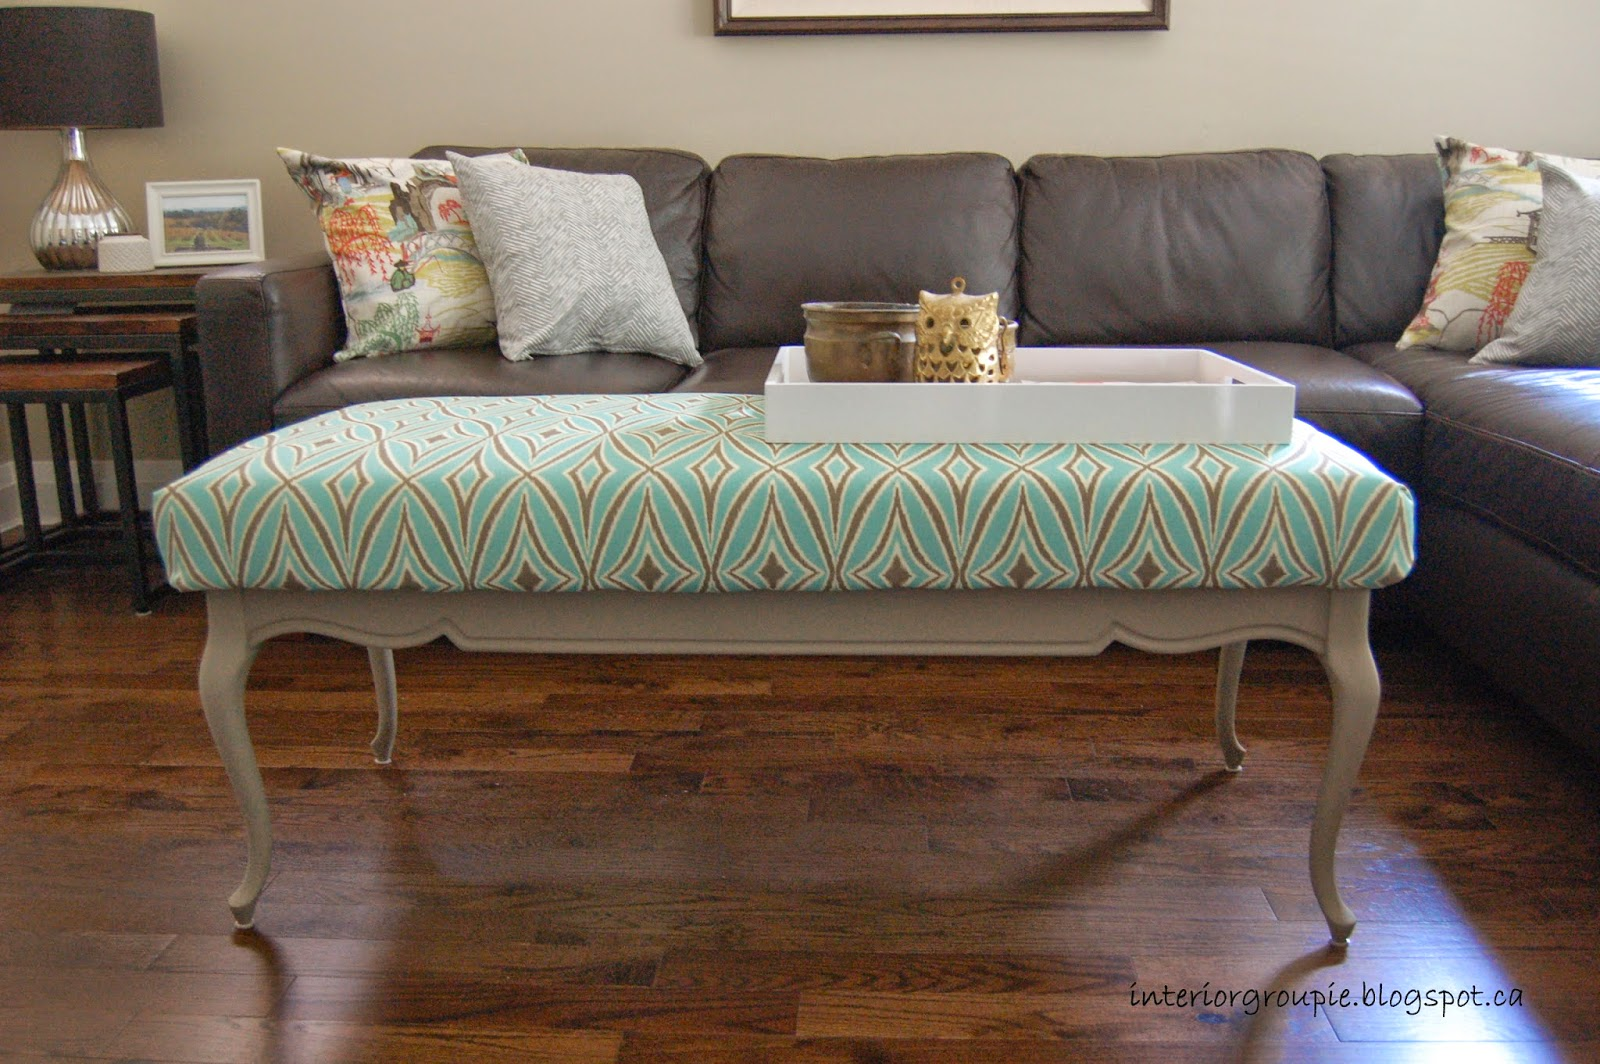 interior groupie diy coffee table and living room refresh update